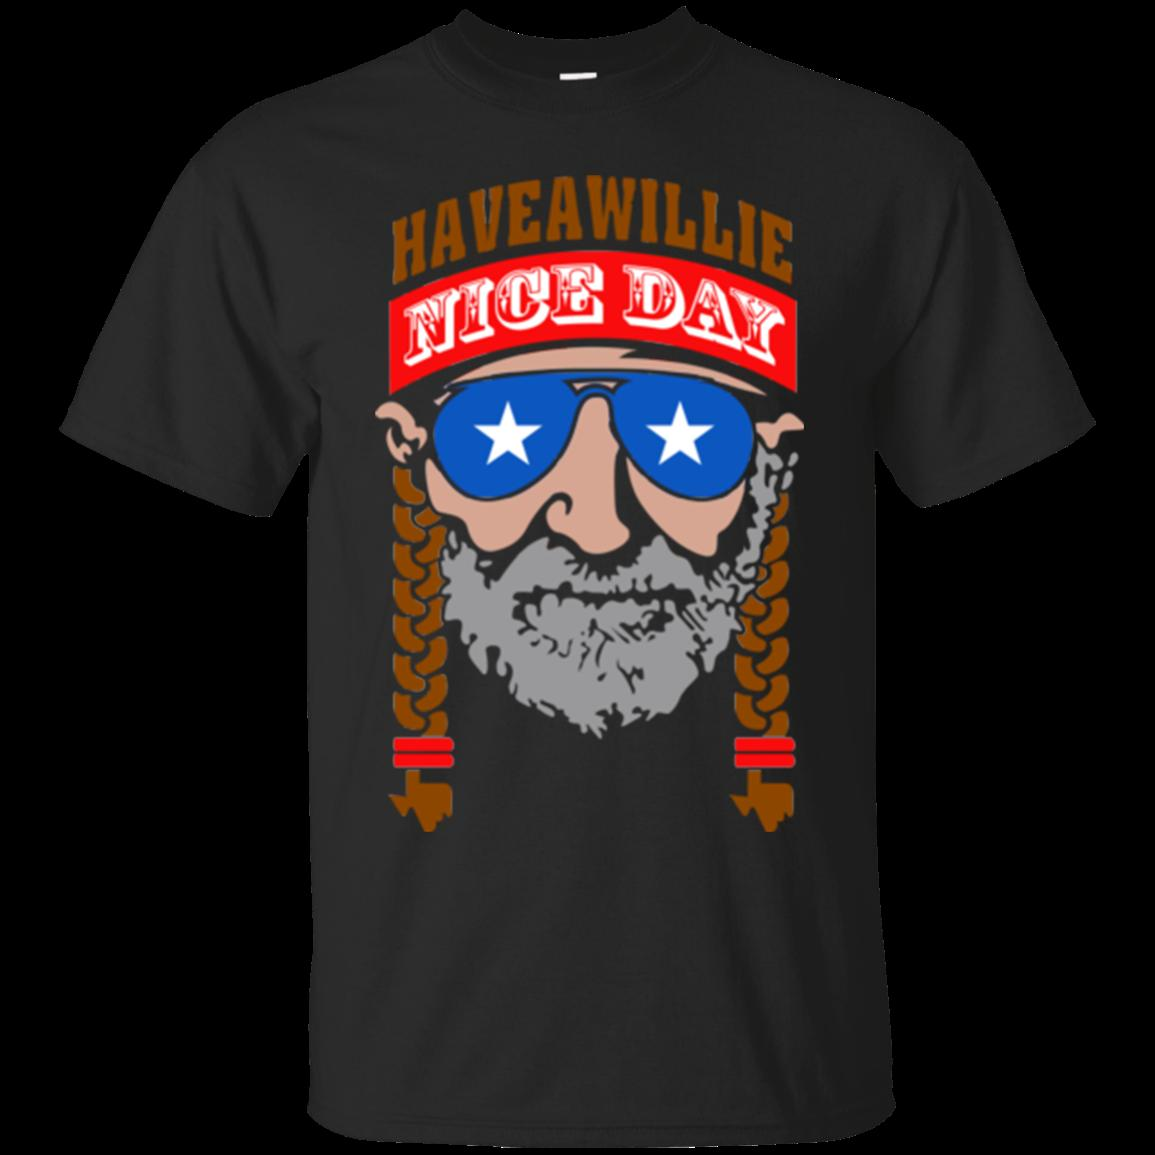 ff6be7c2 Willie Nelson Have A Willie Nice Day T Shirt Tees Clothing Awesome T Shirt  Sites Tees Designs From Printforless51, $11.58| DHgate.Com